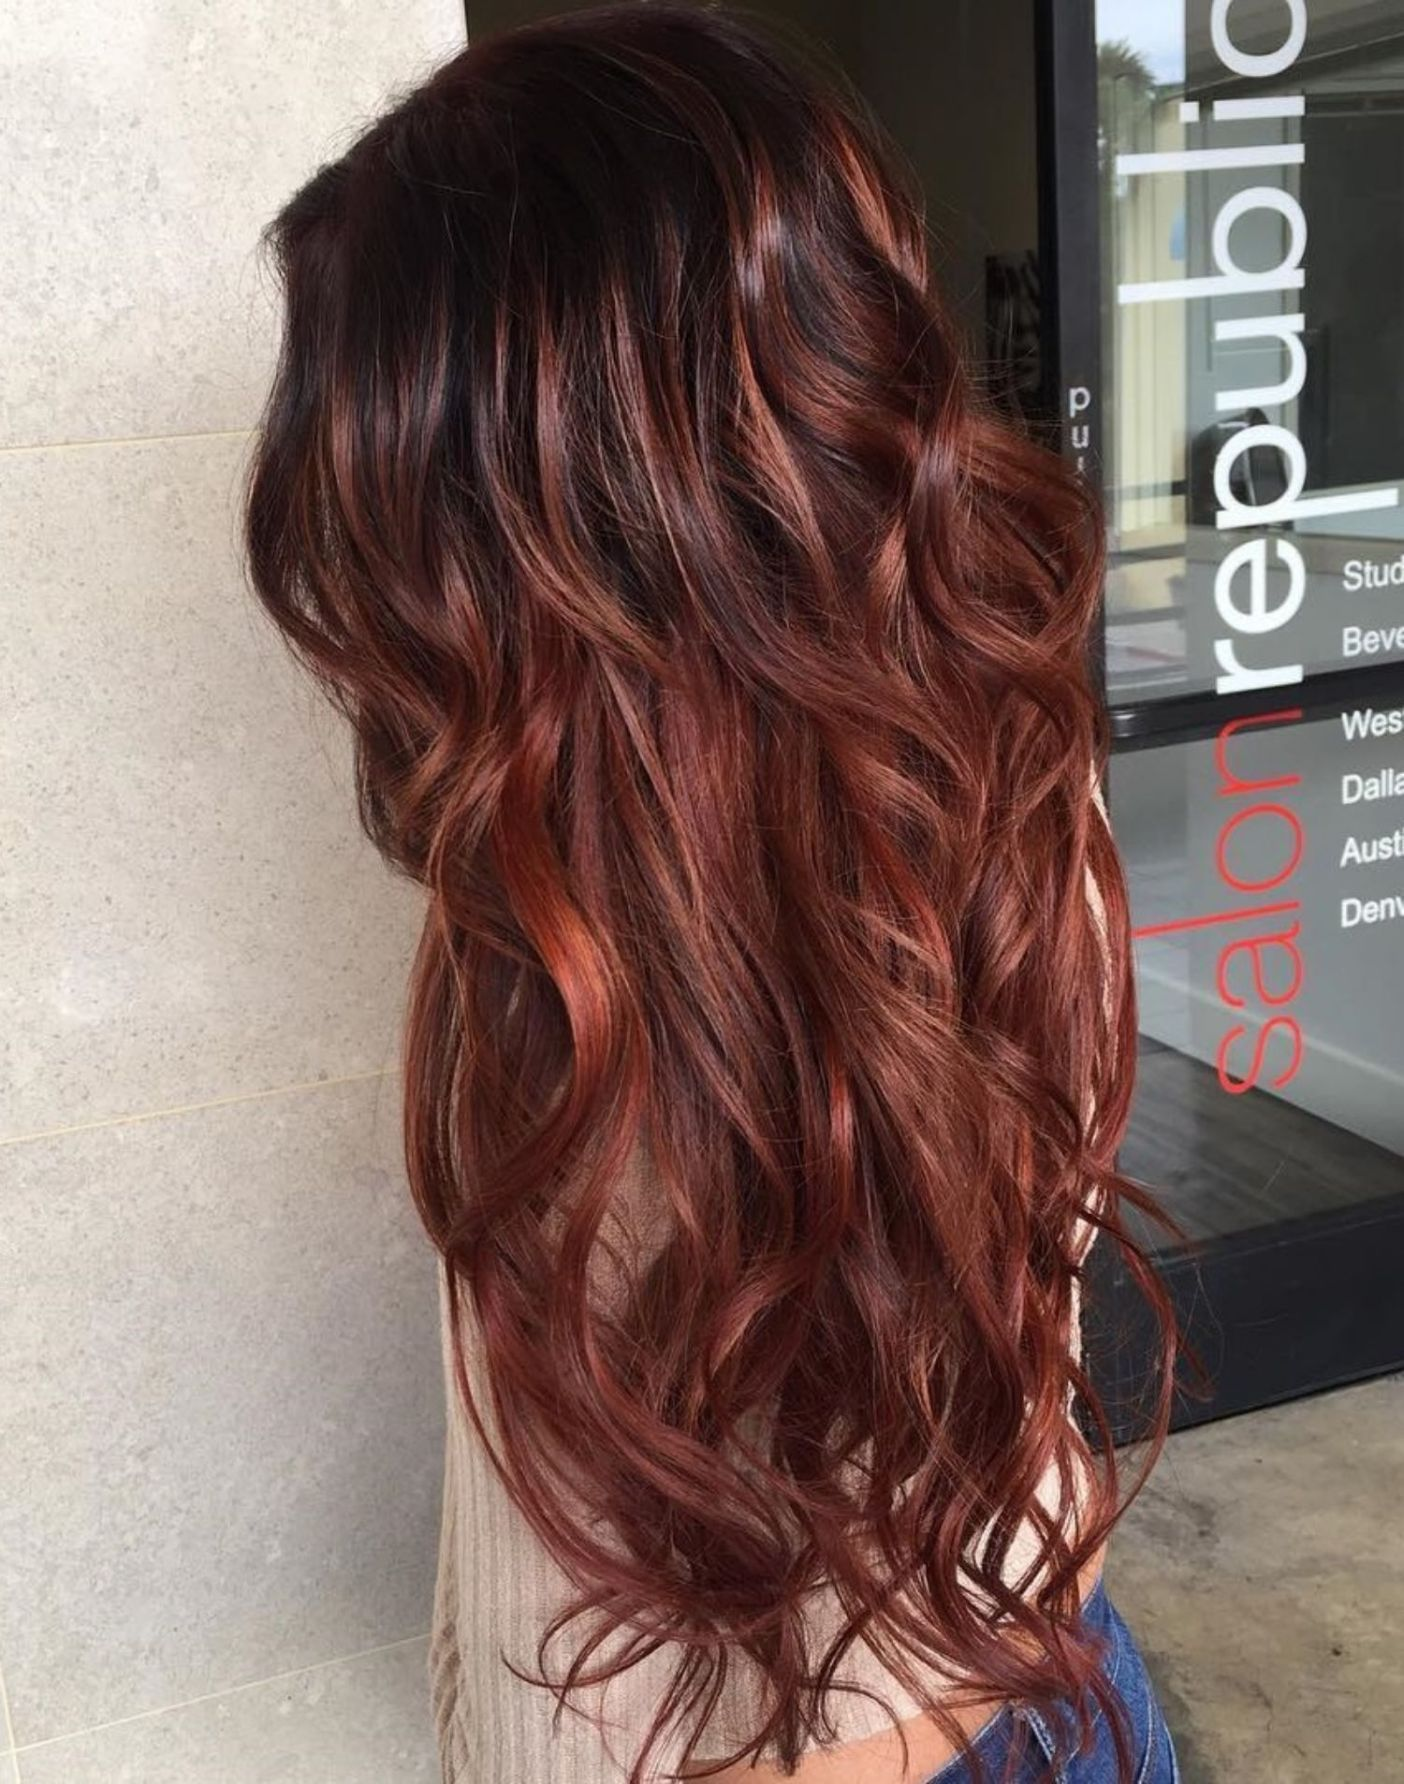 60 Auburn Hair Colors To Emphasize Your Individuality Hair Color Auburn Auburn Red Hair Natural Brown Hair